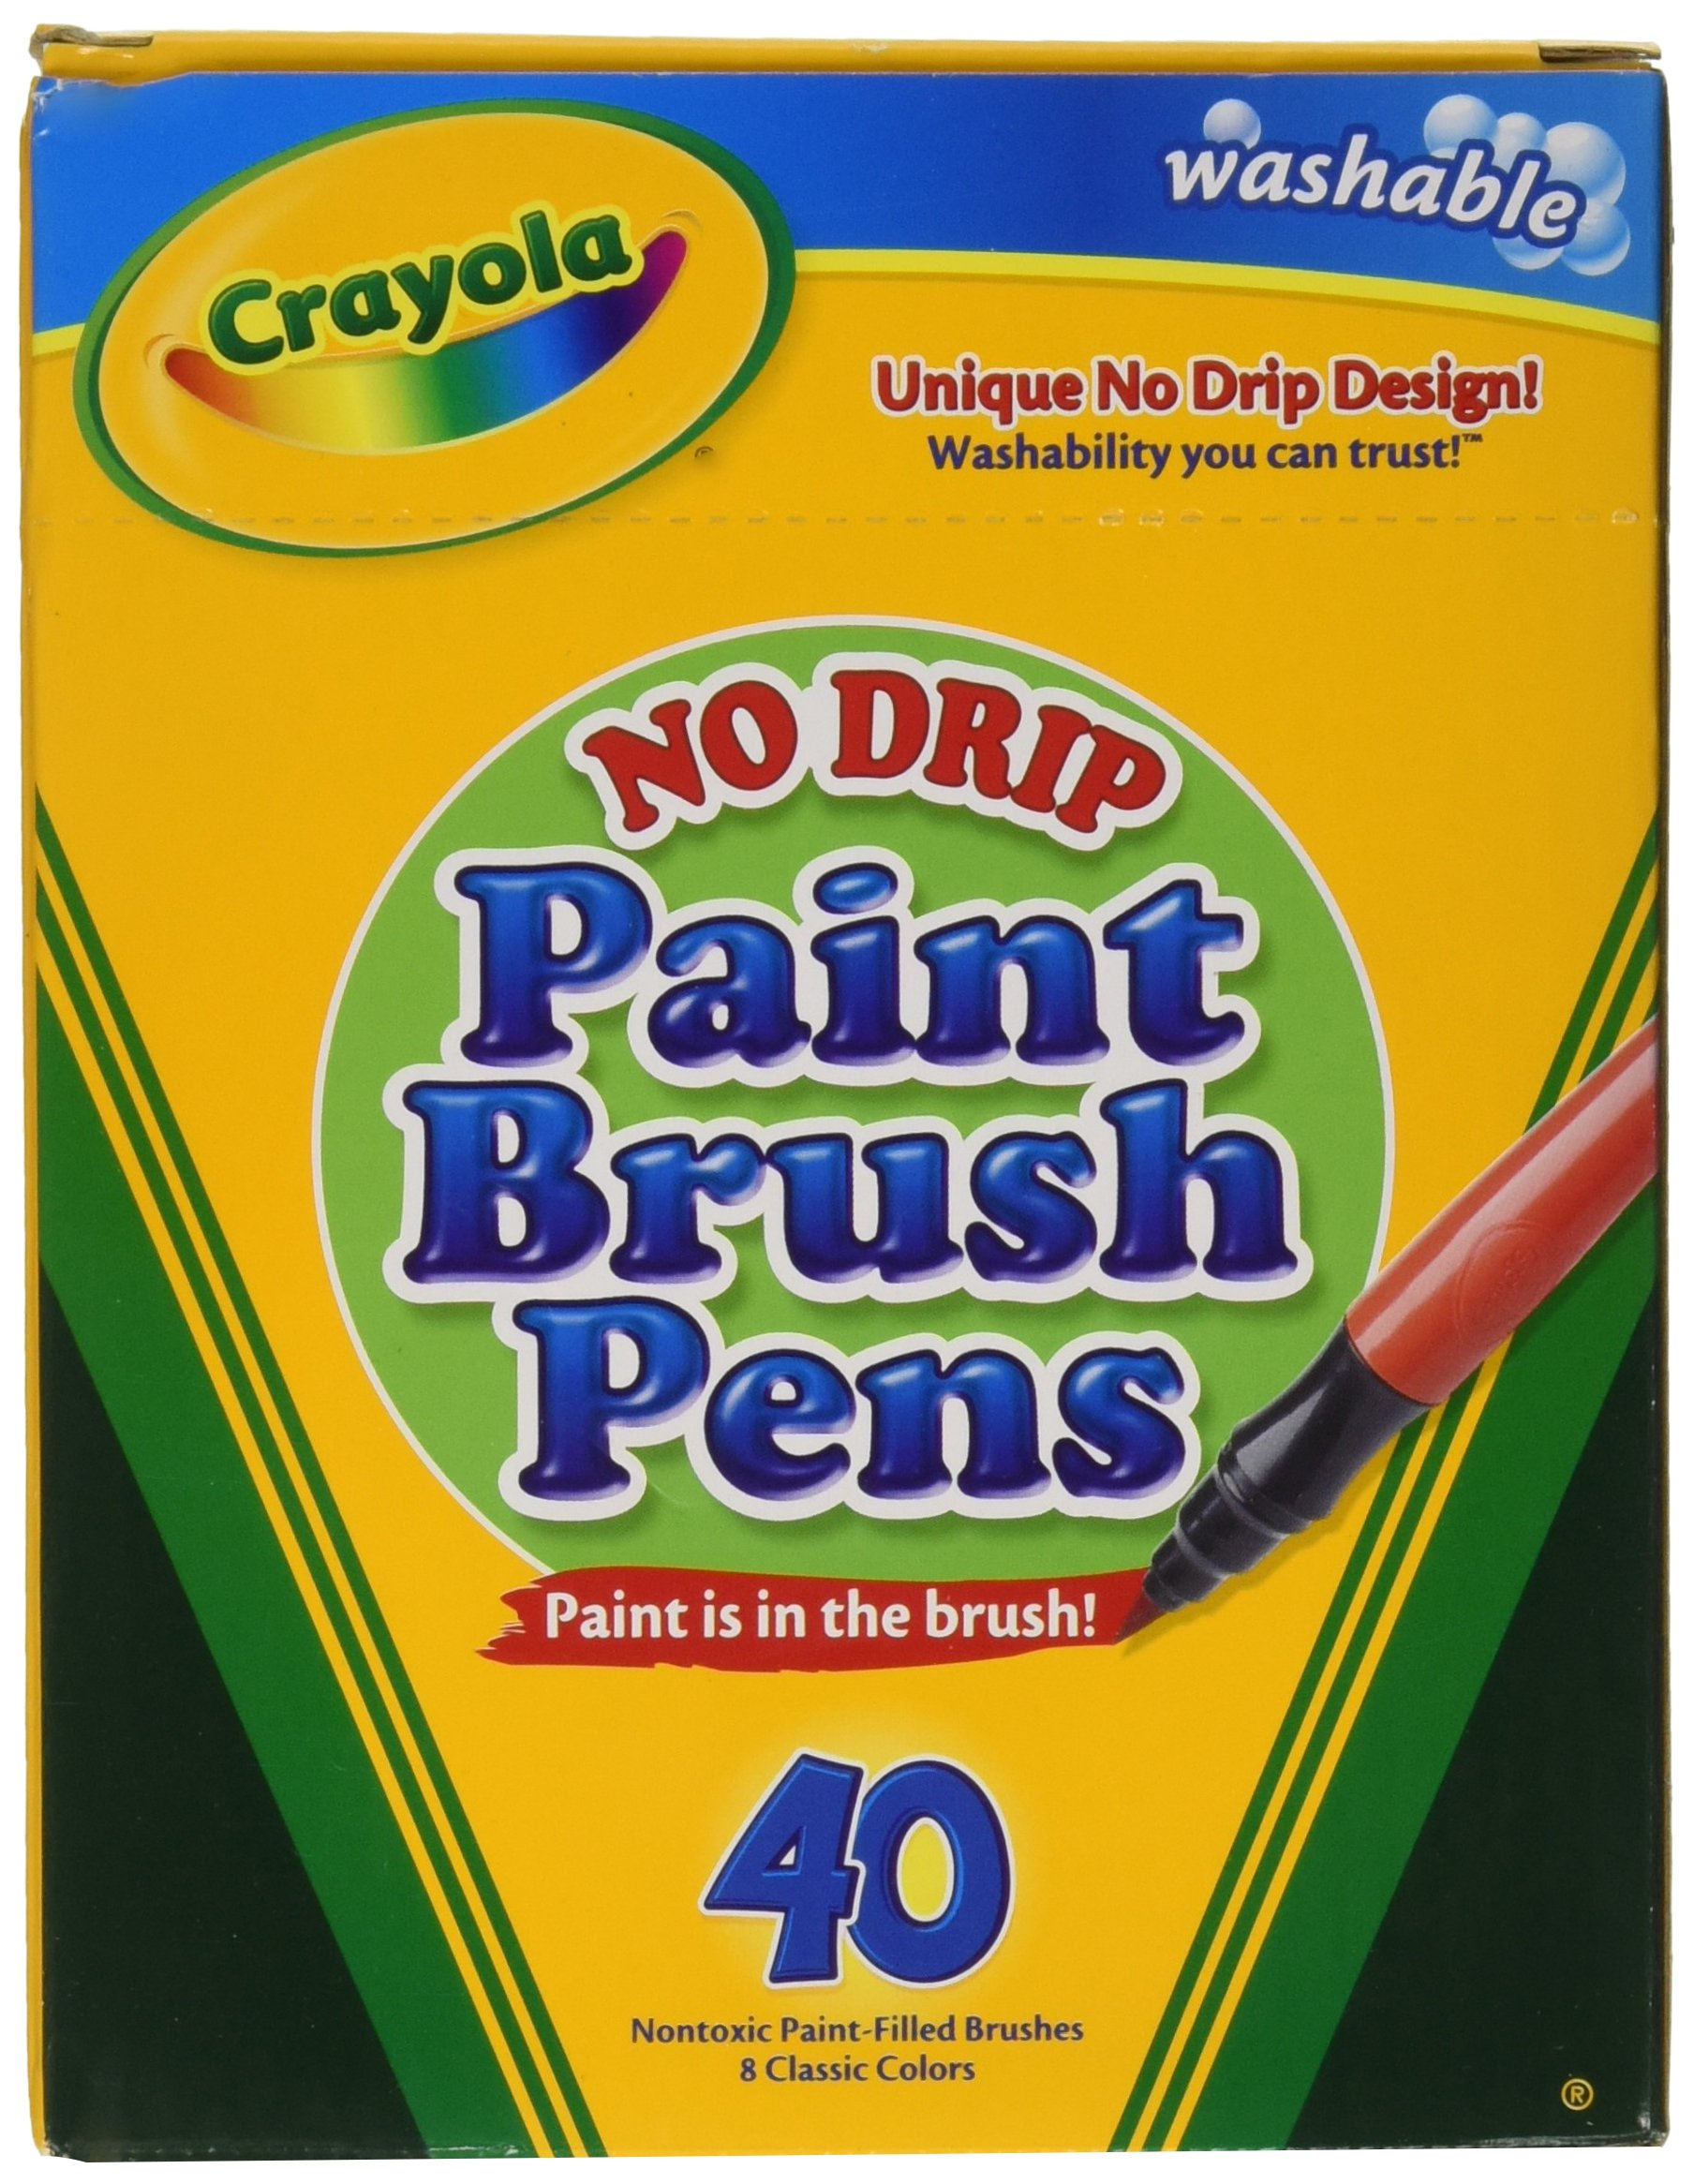 Crayola Paint Brush Pens, Washable Paints, 8 Colors, 40 Count by Crayola